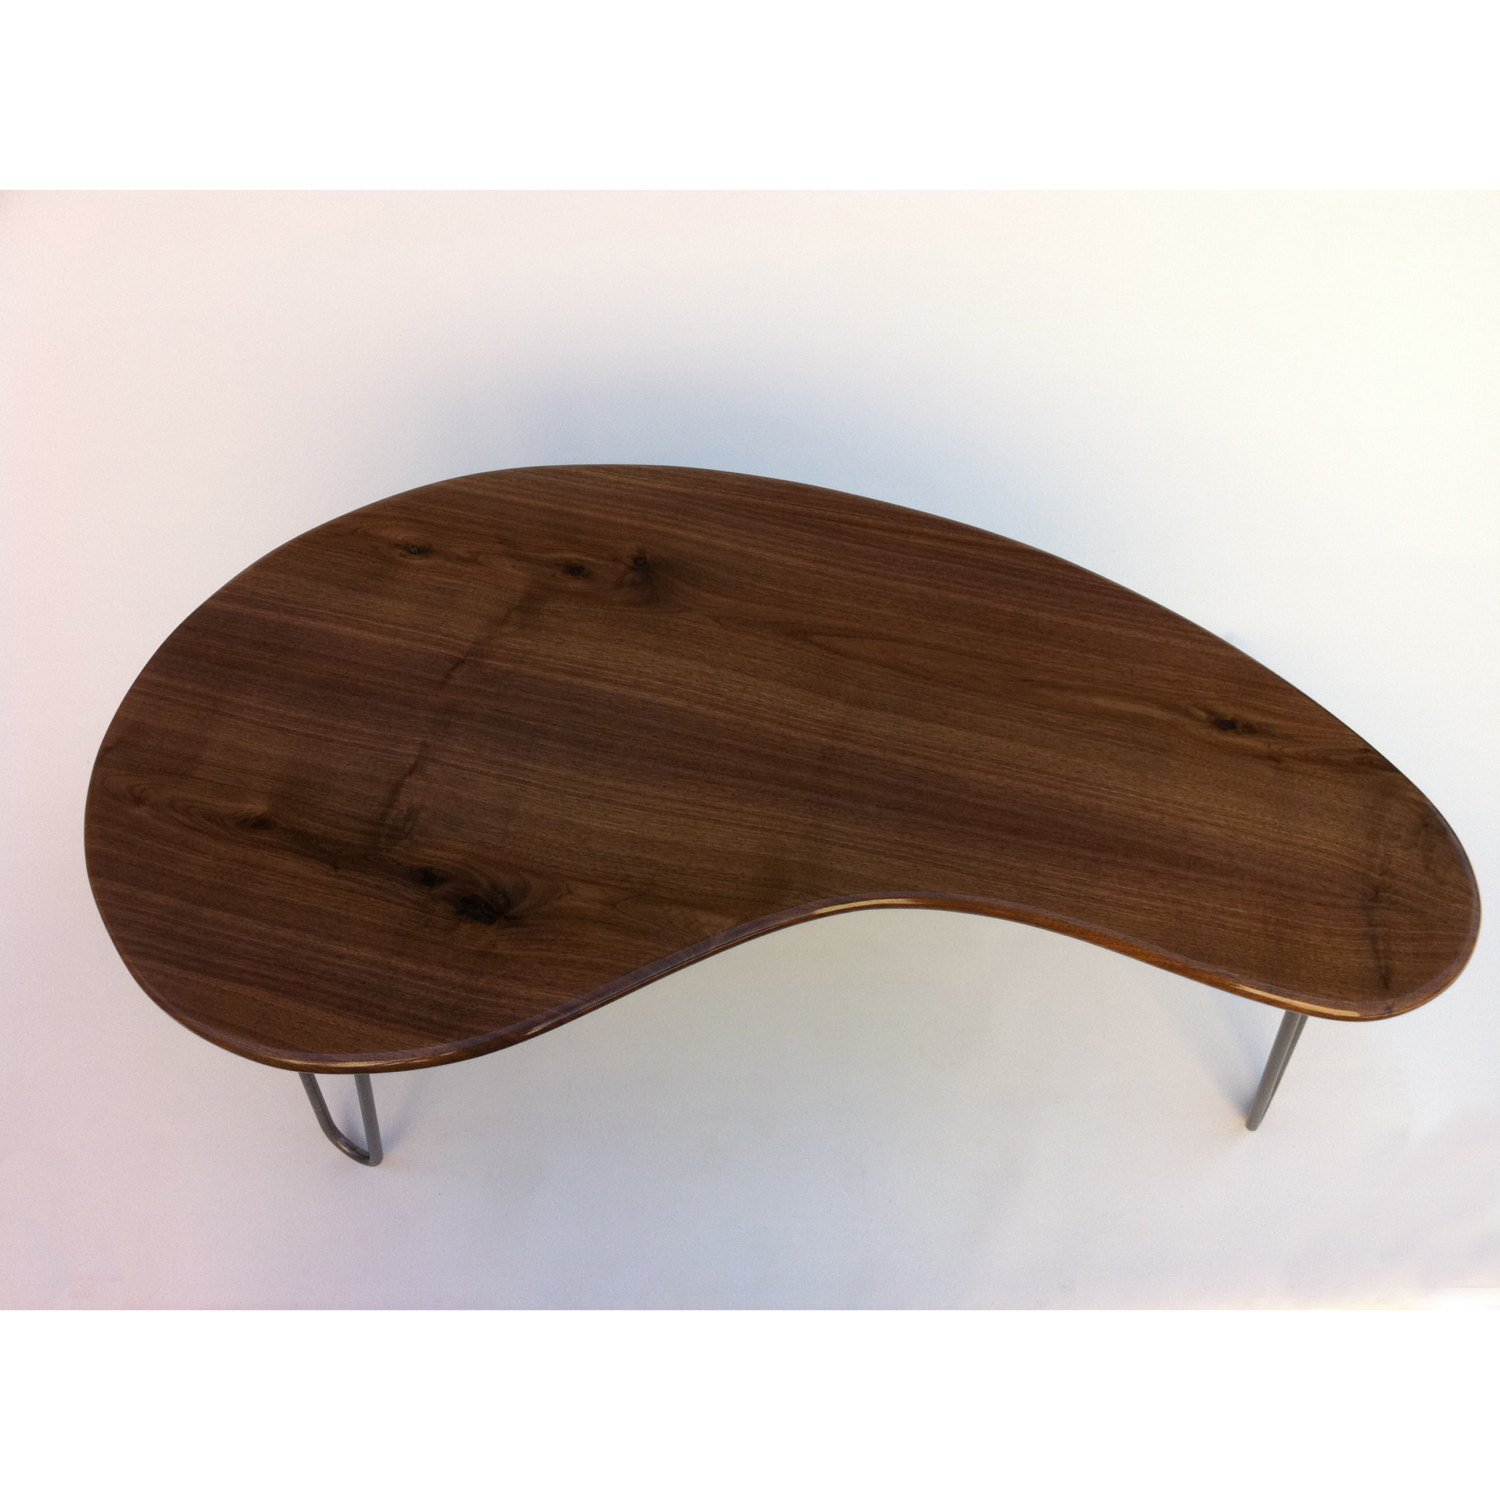 Mid Century Modern Coffee Table 60 Large Solid Walnut Cocktail Table Kidney Bean Shaped